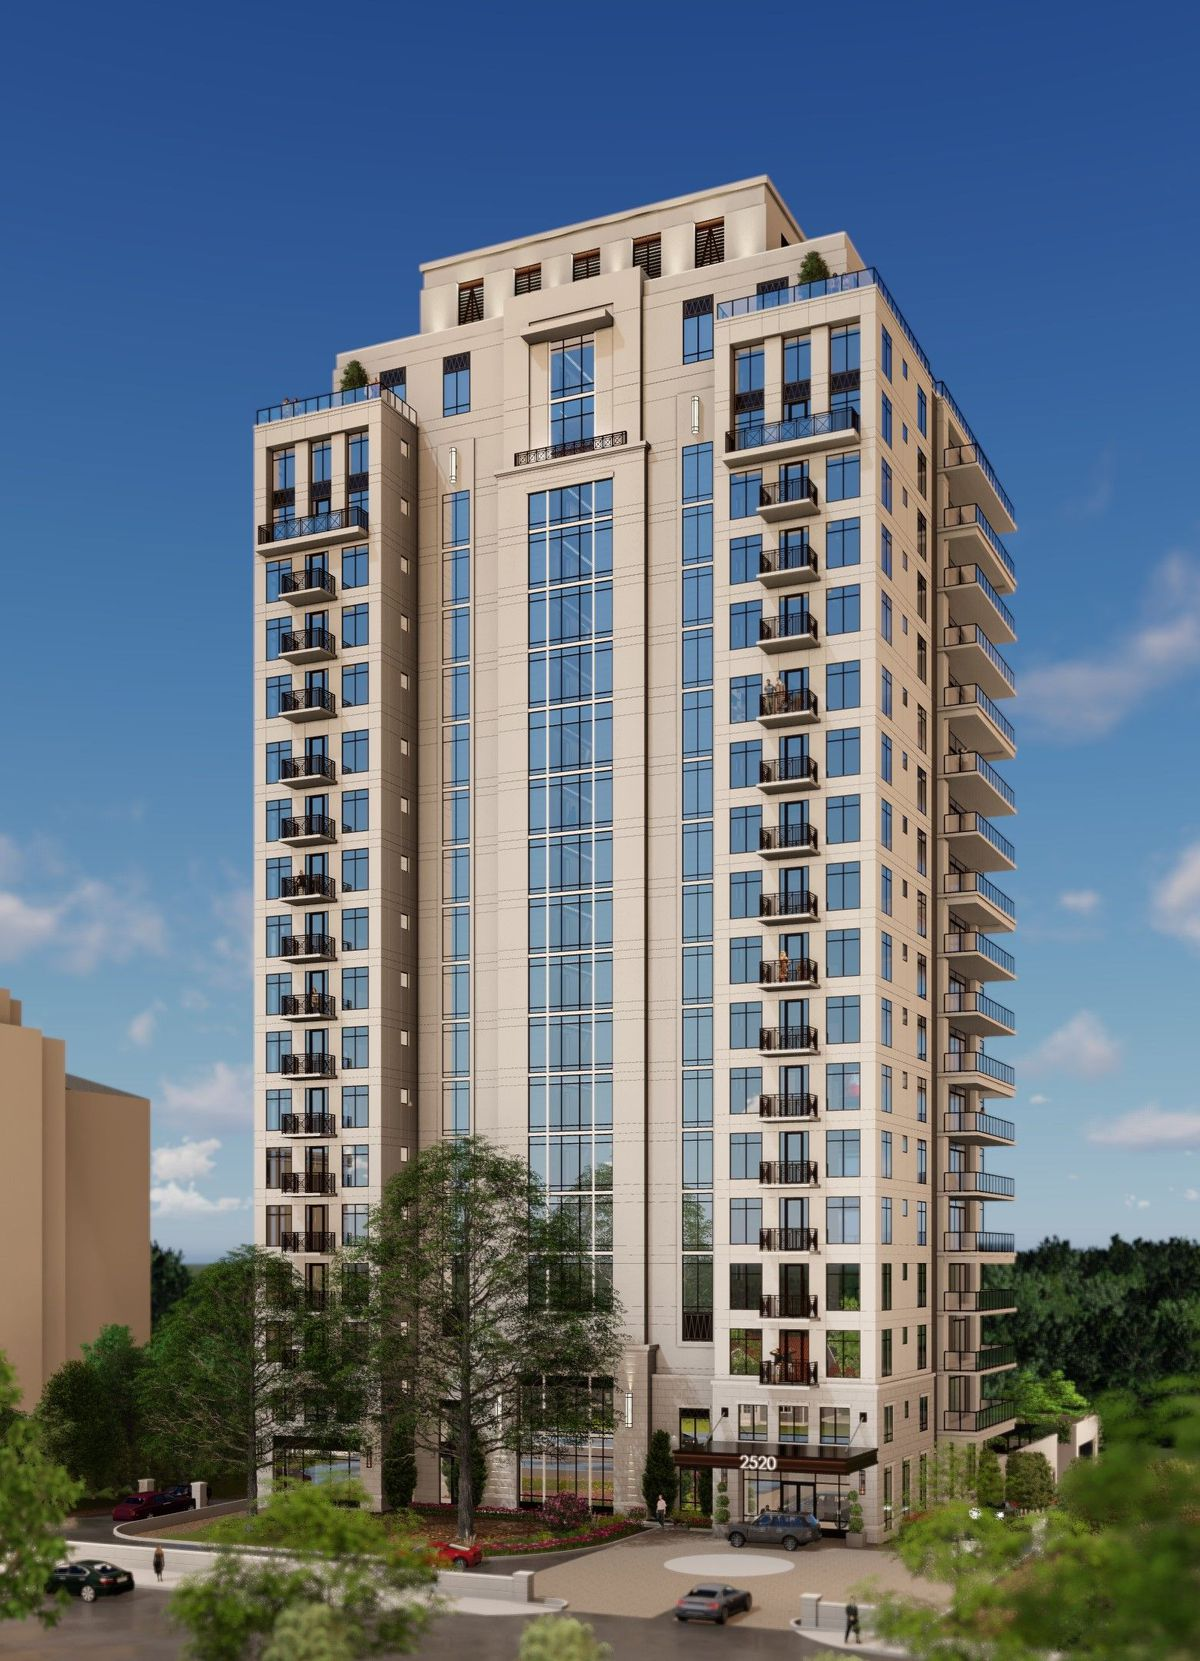 A rendering of a tall condo building girded by tress at the base.